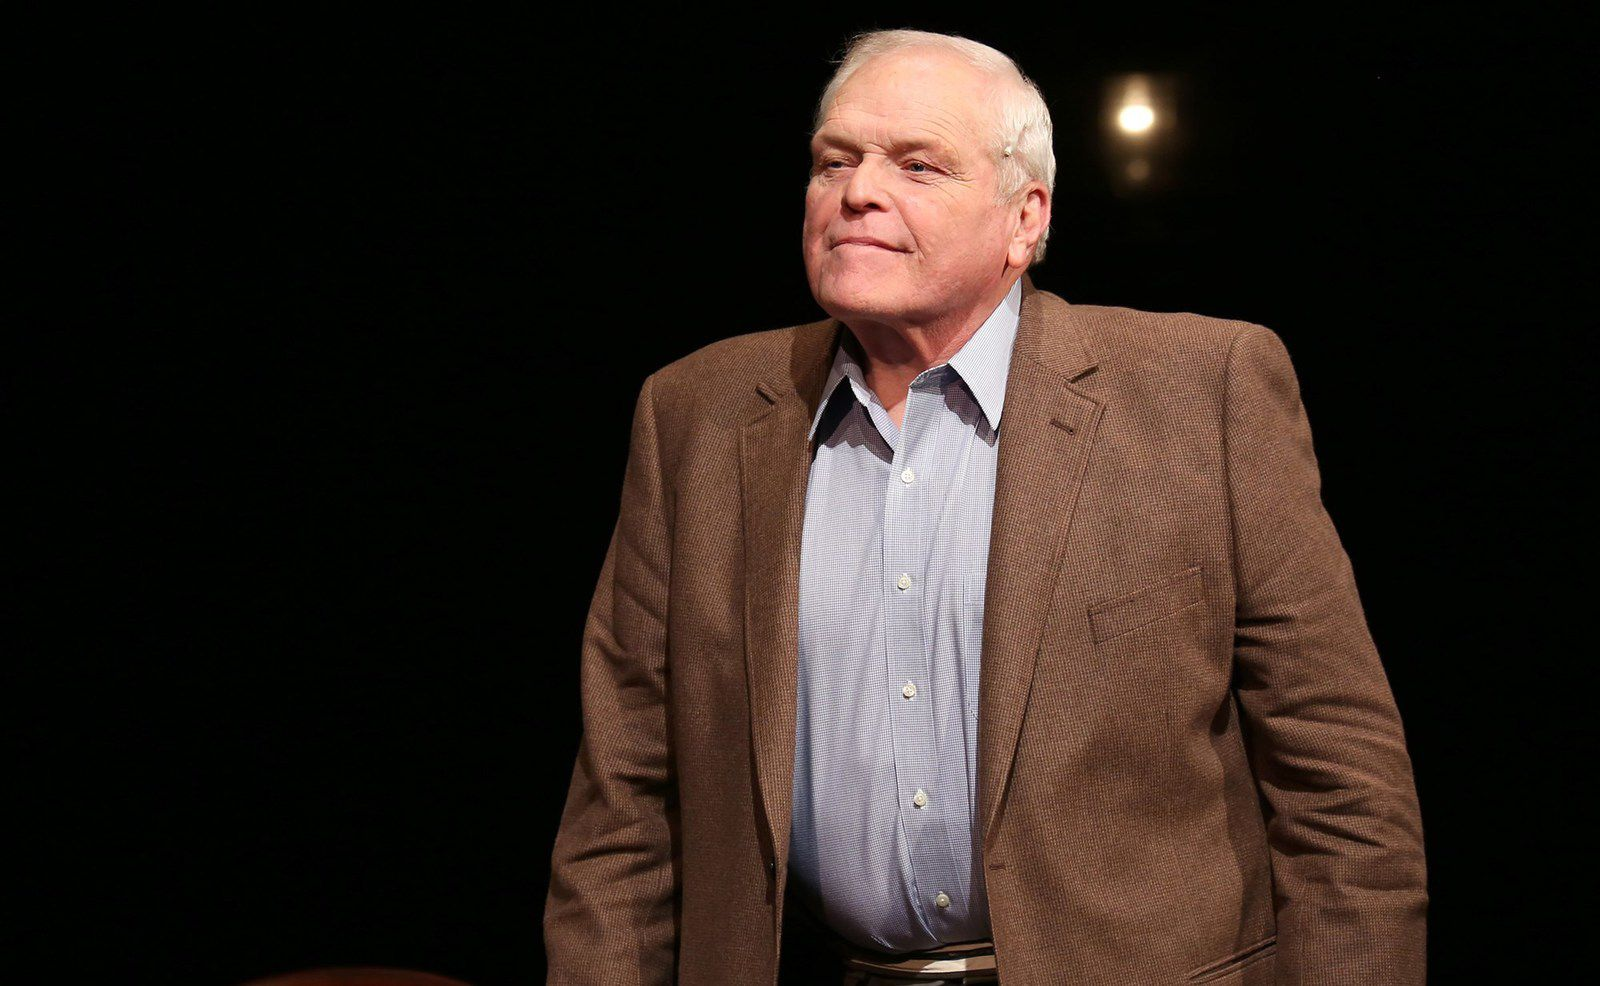 Brian Dennehy during the Broadway opening night performance of 'Love Letters' at the Brooks Atkinson Theatre on Sept. 18, 2014 in New York City.Walter McBride / WireImage file